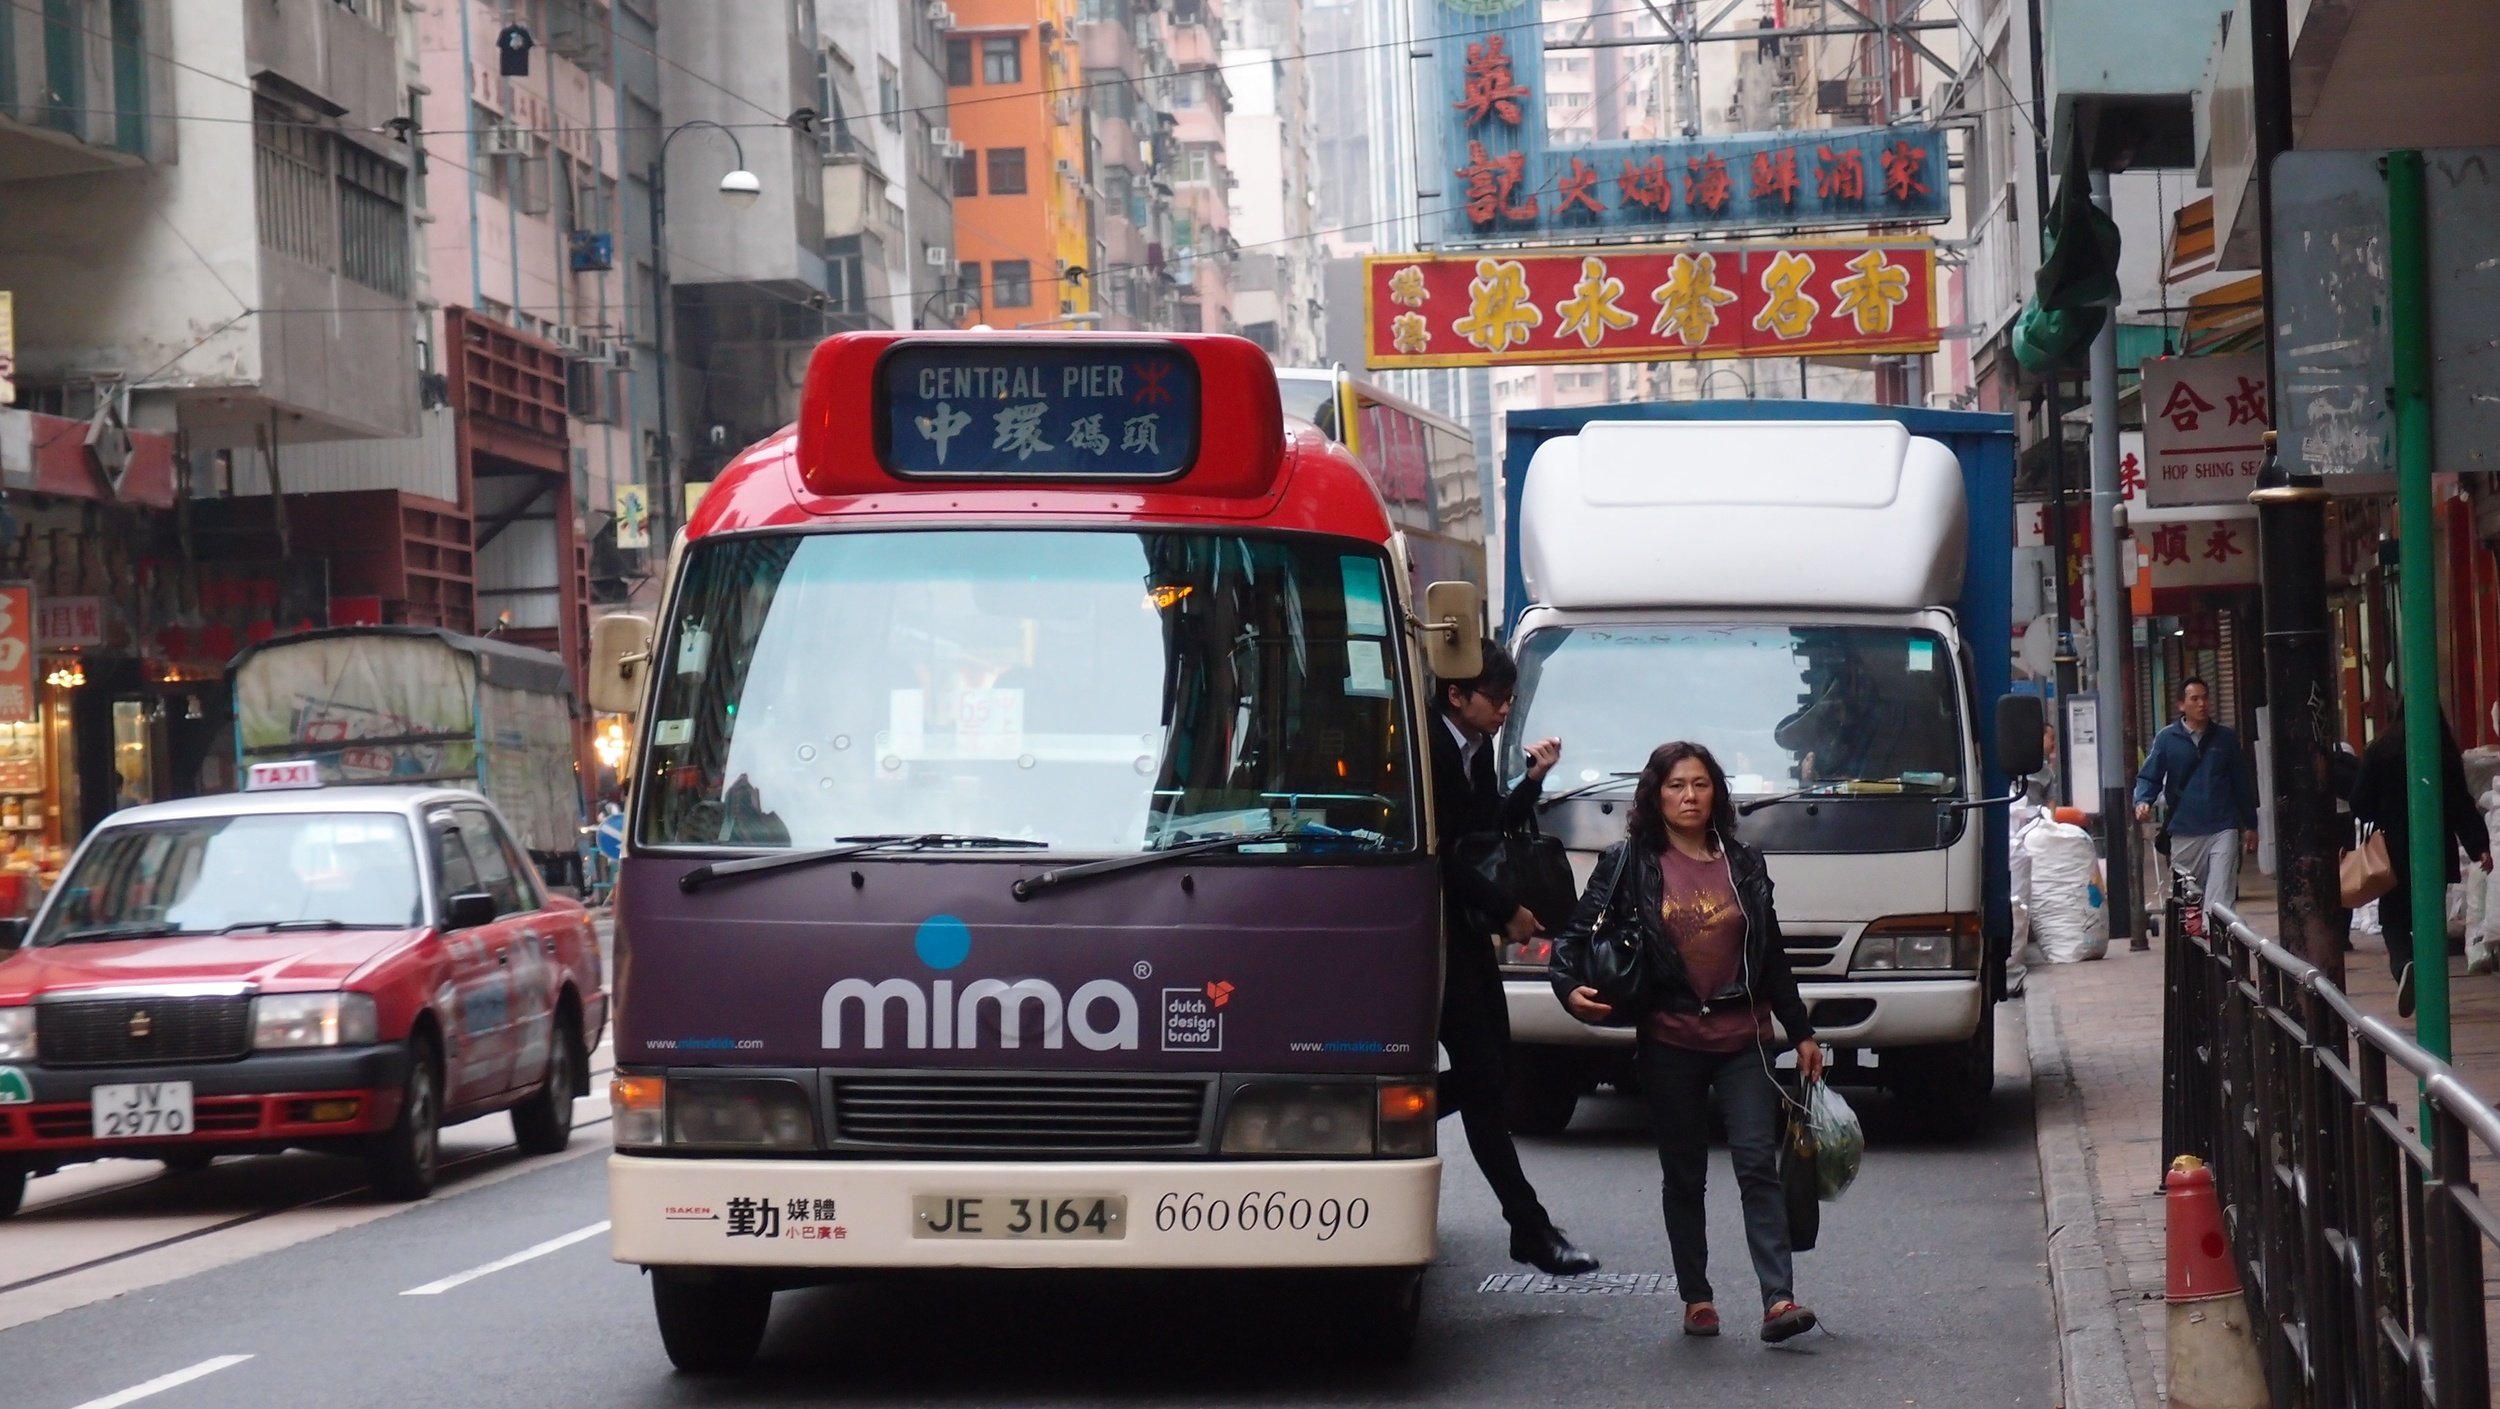 A typical road scene in Western District on Hong Kong Island